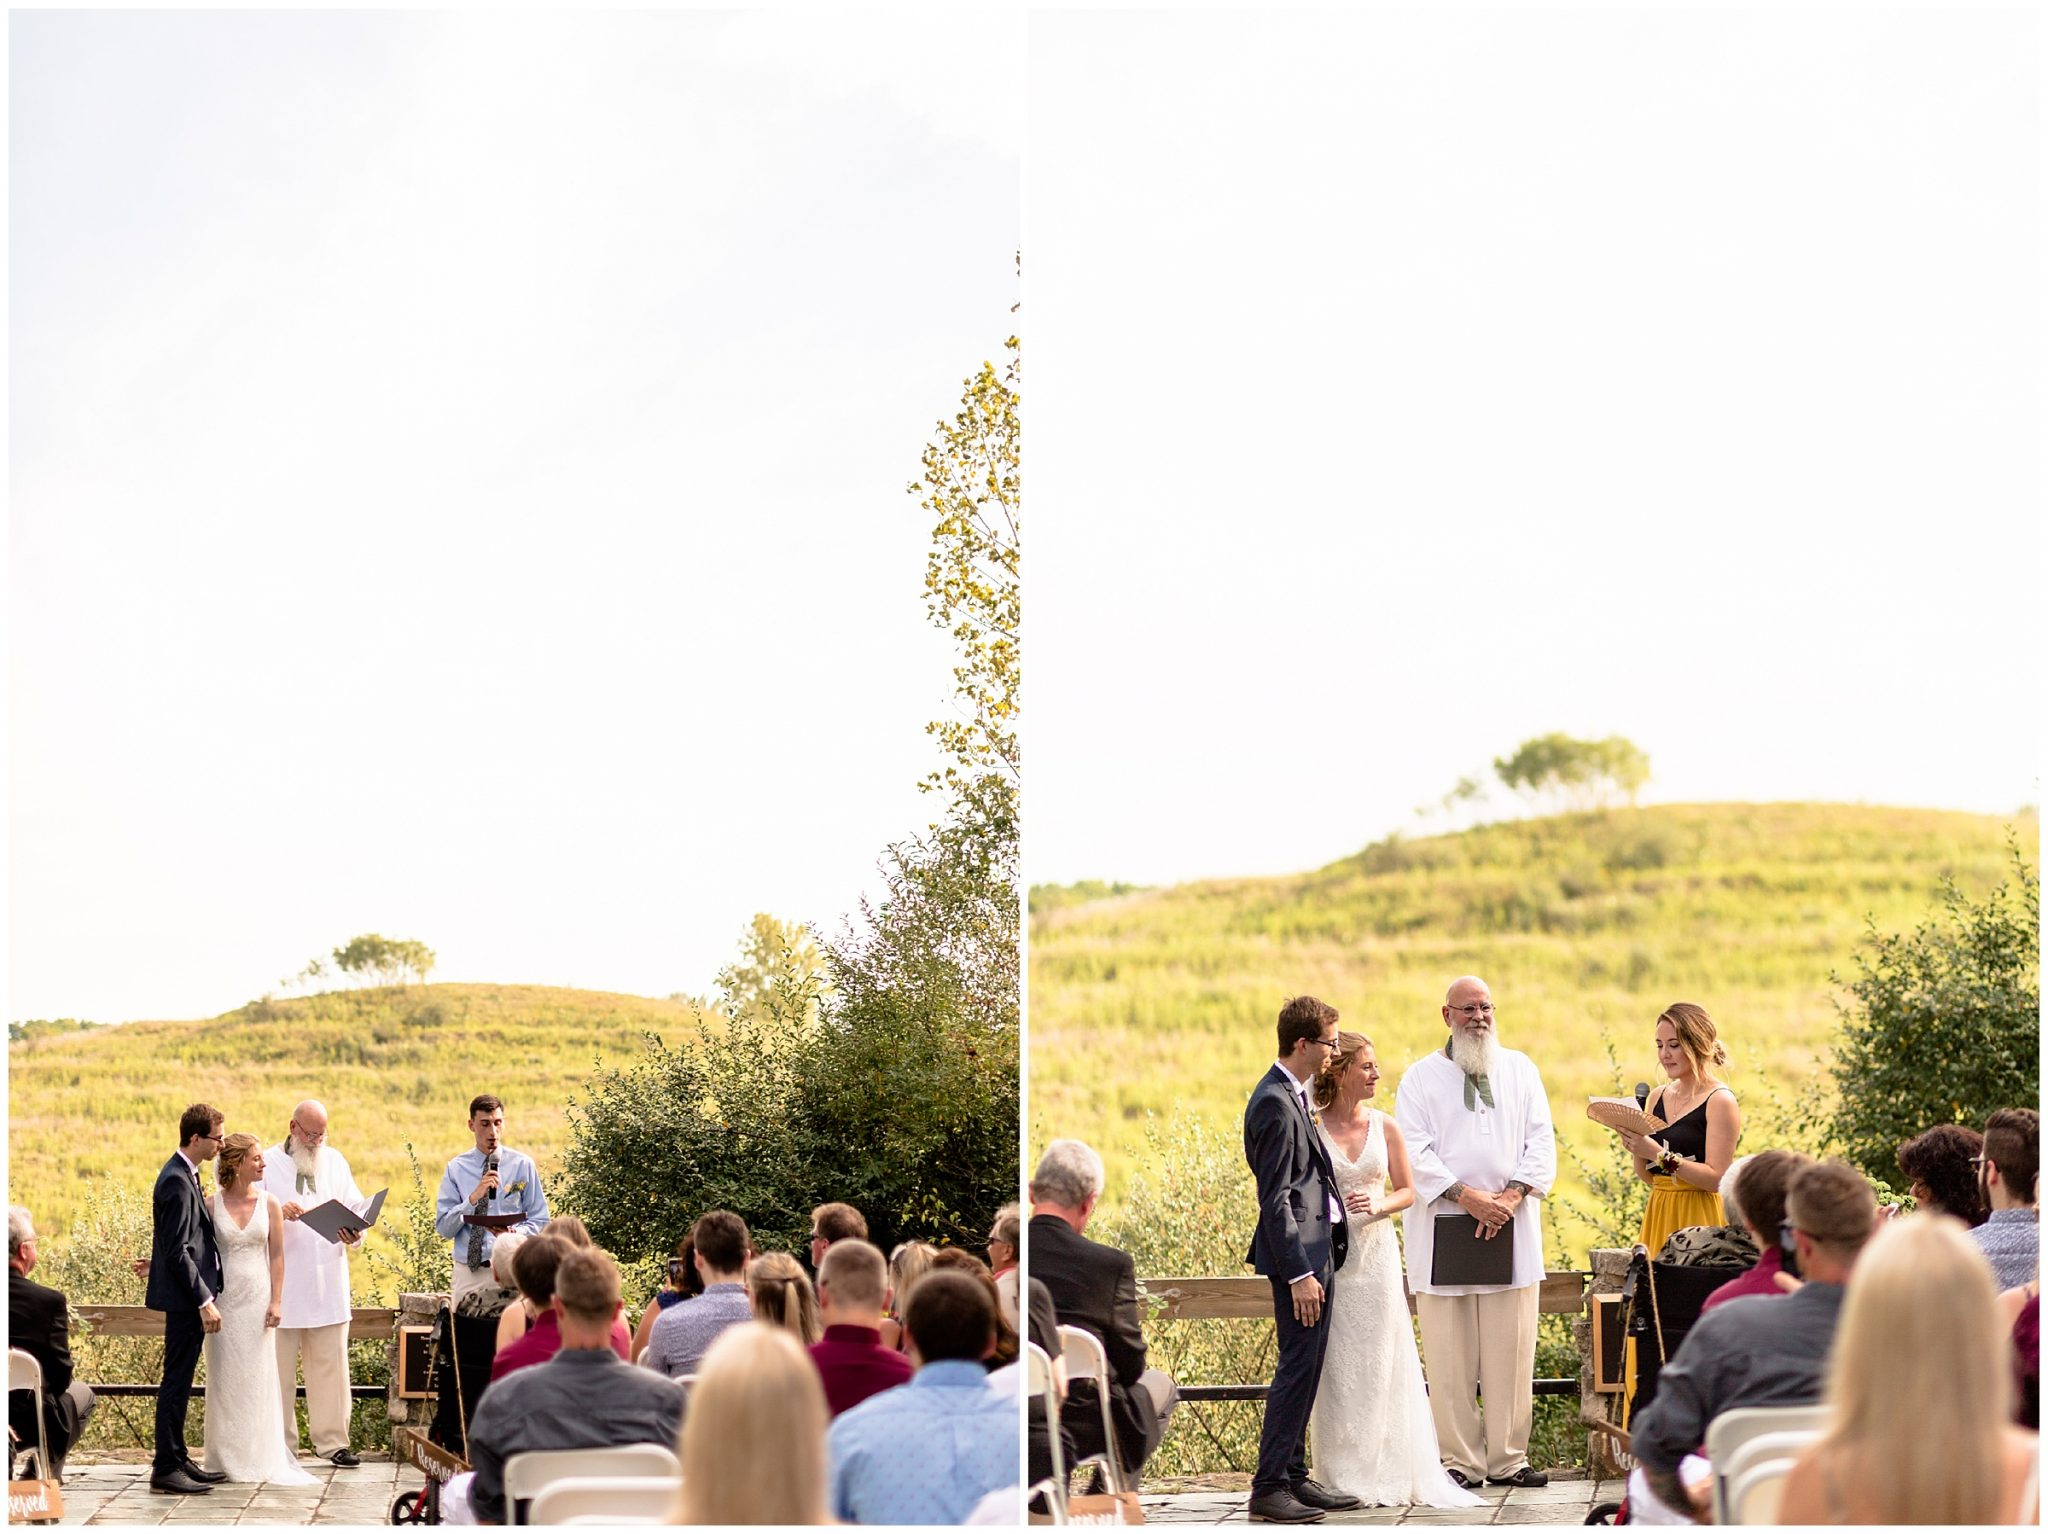 Wildlife Prairie Park Wedding Peoria Illinois_0140